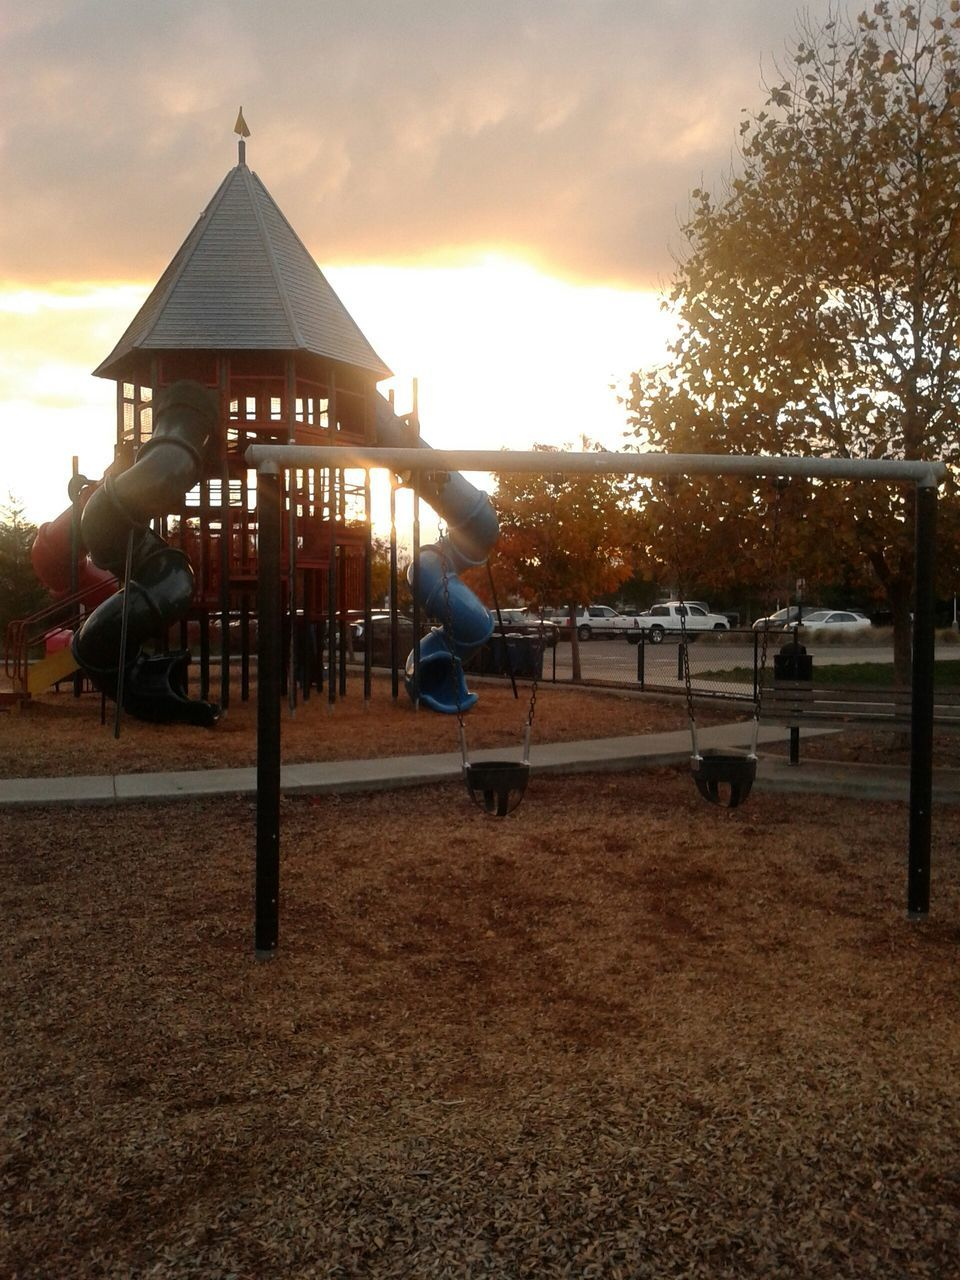 sunset, playground, sky, silhouette, real people, tree, nature, leisure activity, childhood, full length, outdoors, outdoor play equipment, lifestyles, men, one person, beauty in nature, day, people